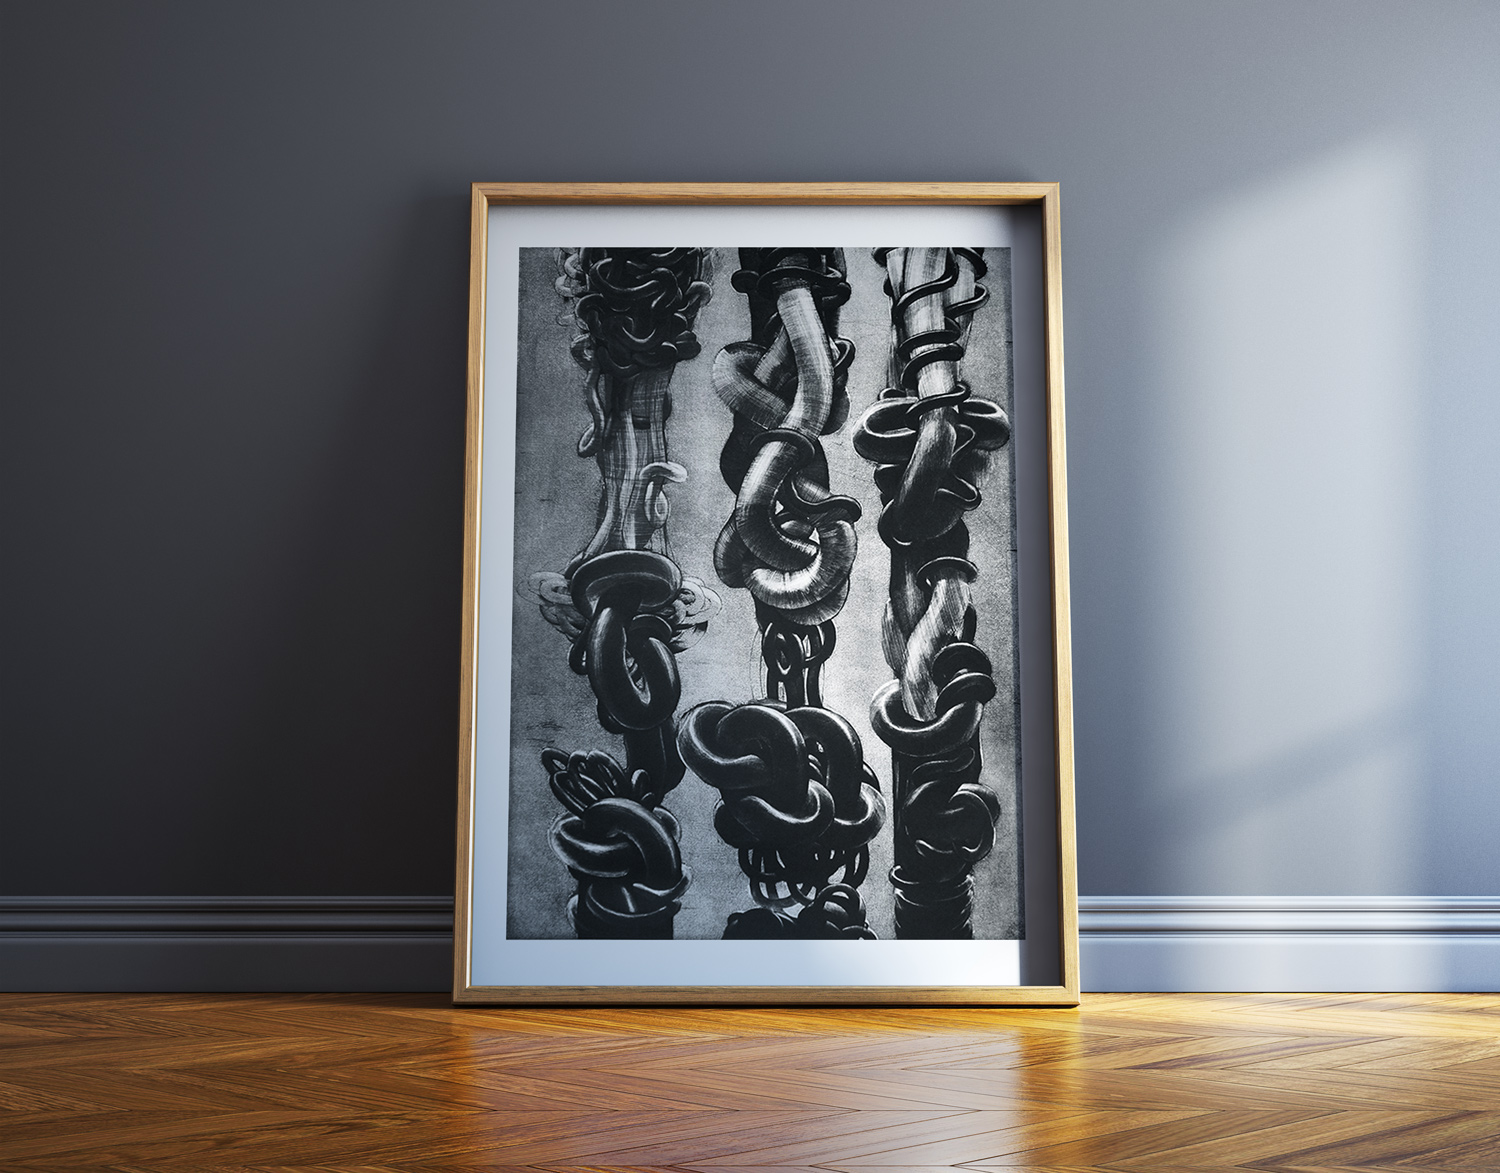 art-prints, engravings, abstract, aesthetic, monochrome, architecture, black, grey, white, ink, paper, abstract-forms, autumn, danish, decorative, design, interior, interior-design, nordic, scandinavien, Buy original high quality art. Paintings, drawings, limited edition prints & posters by talented artists.